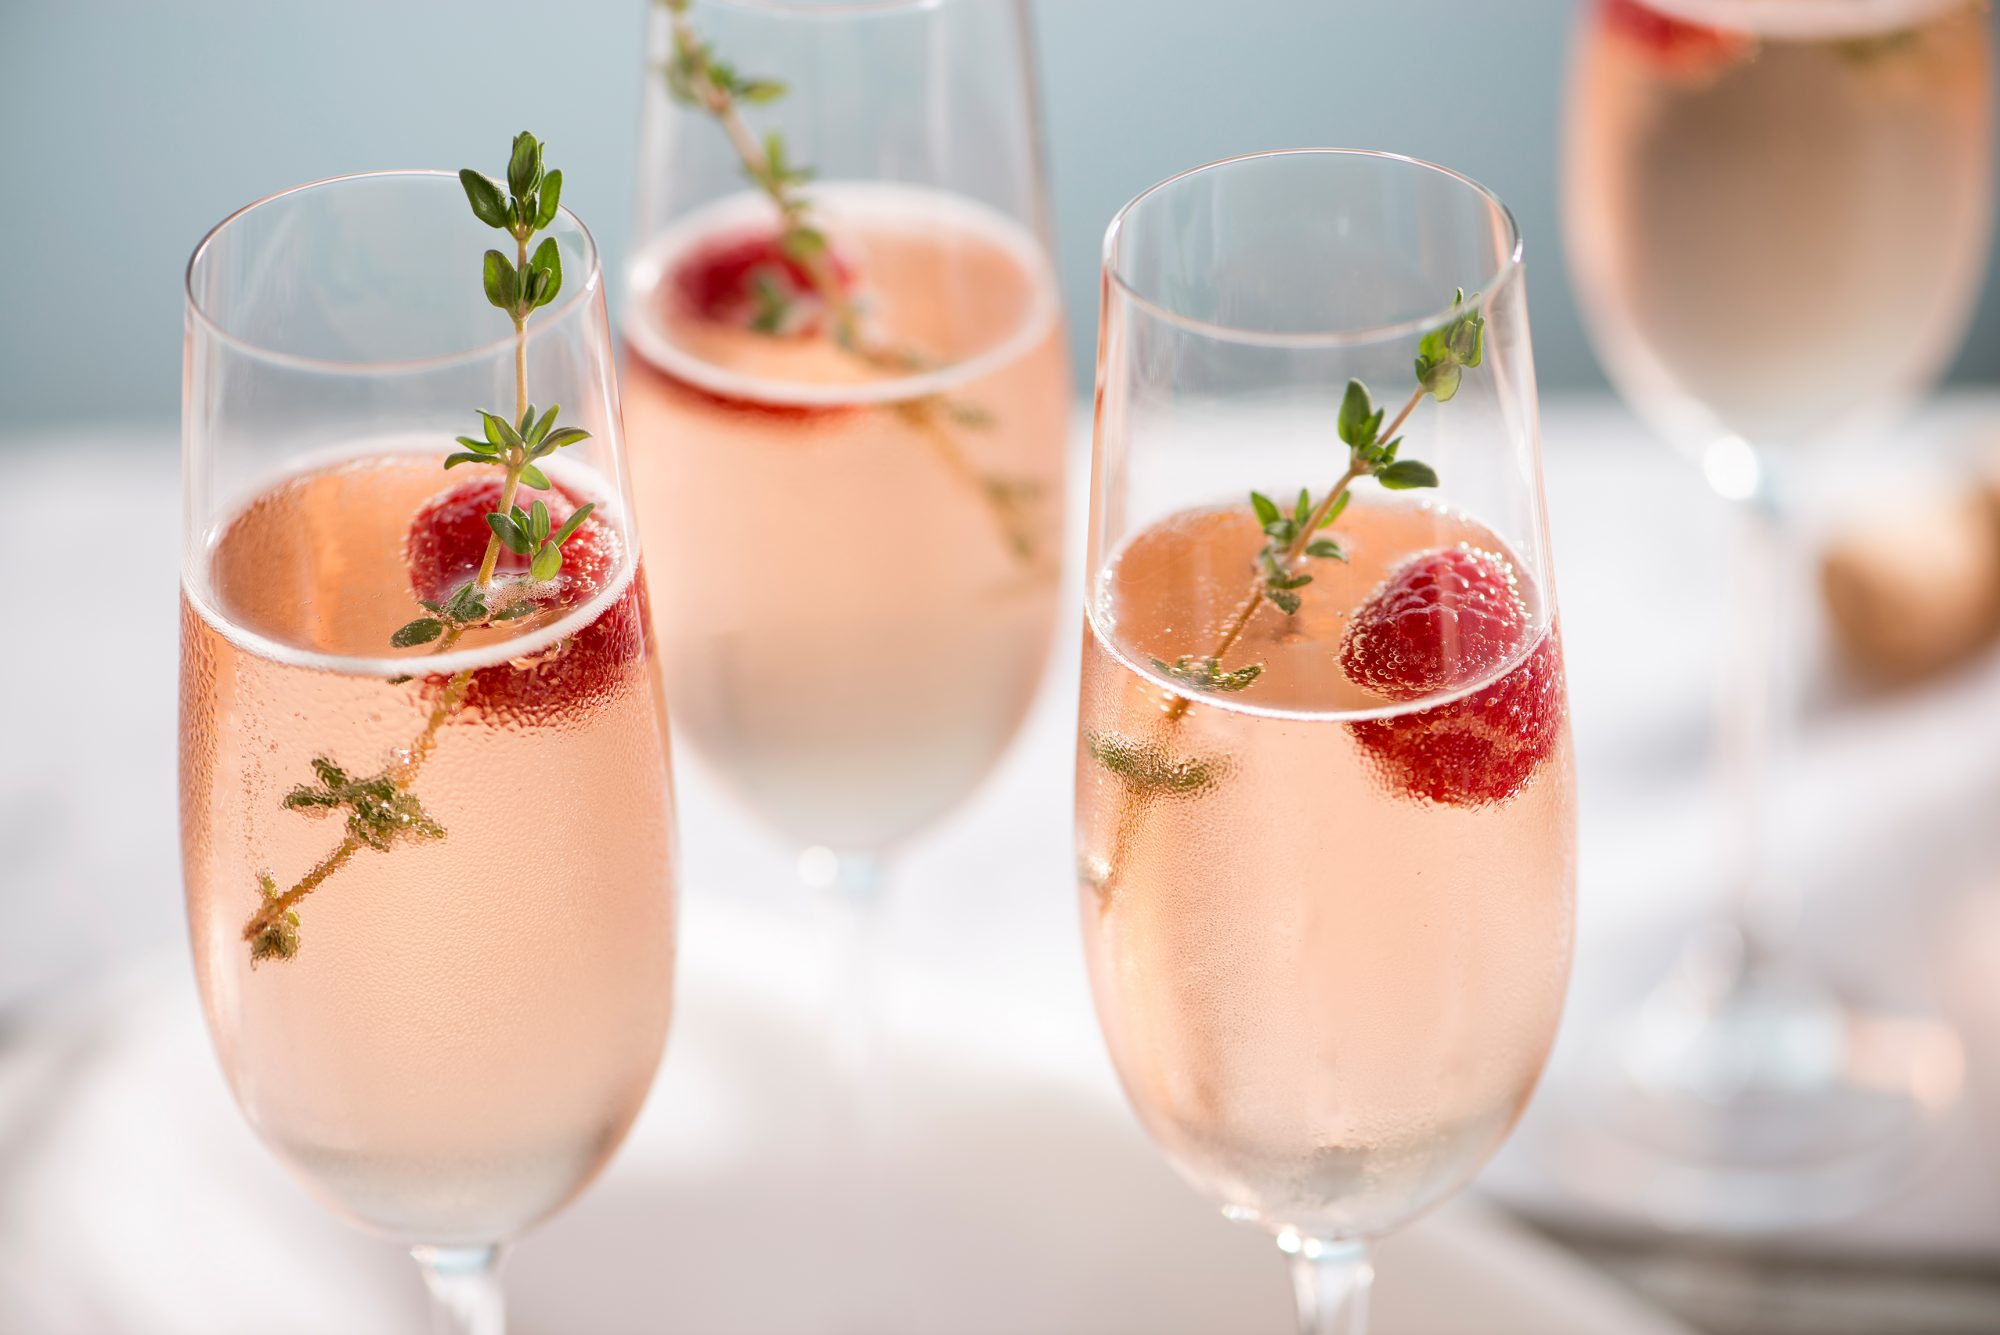 5 Healthy-ish Alcoholic Drinks for Smarter Holiday Sipping